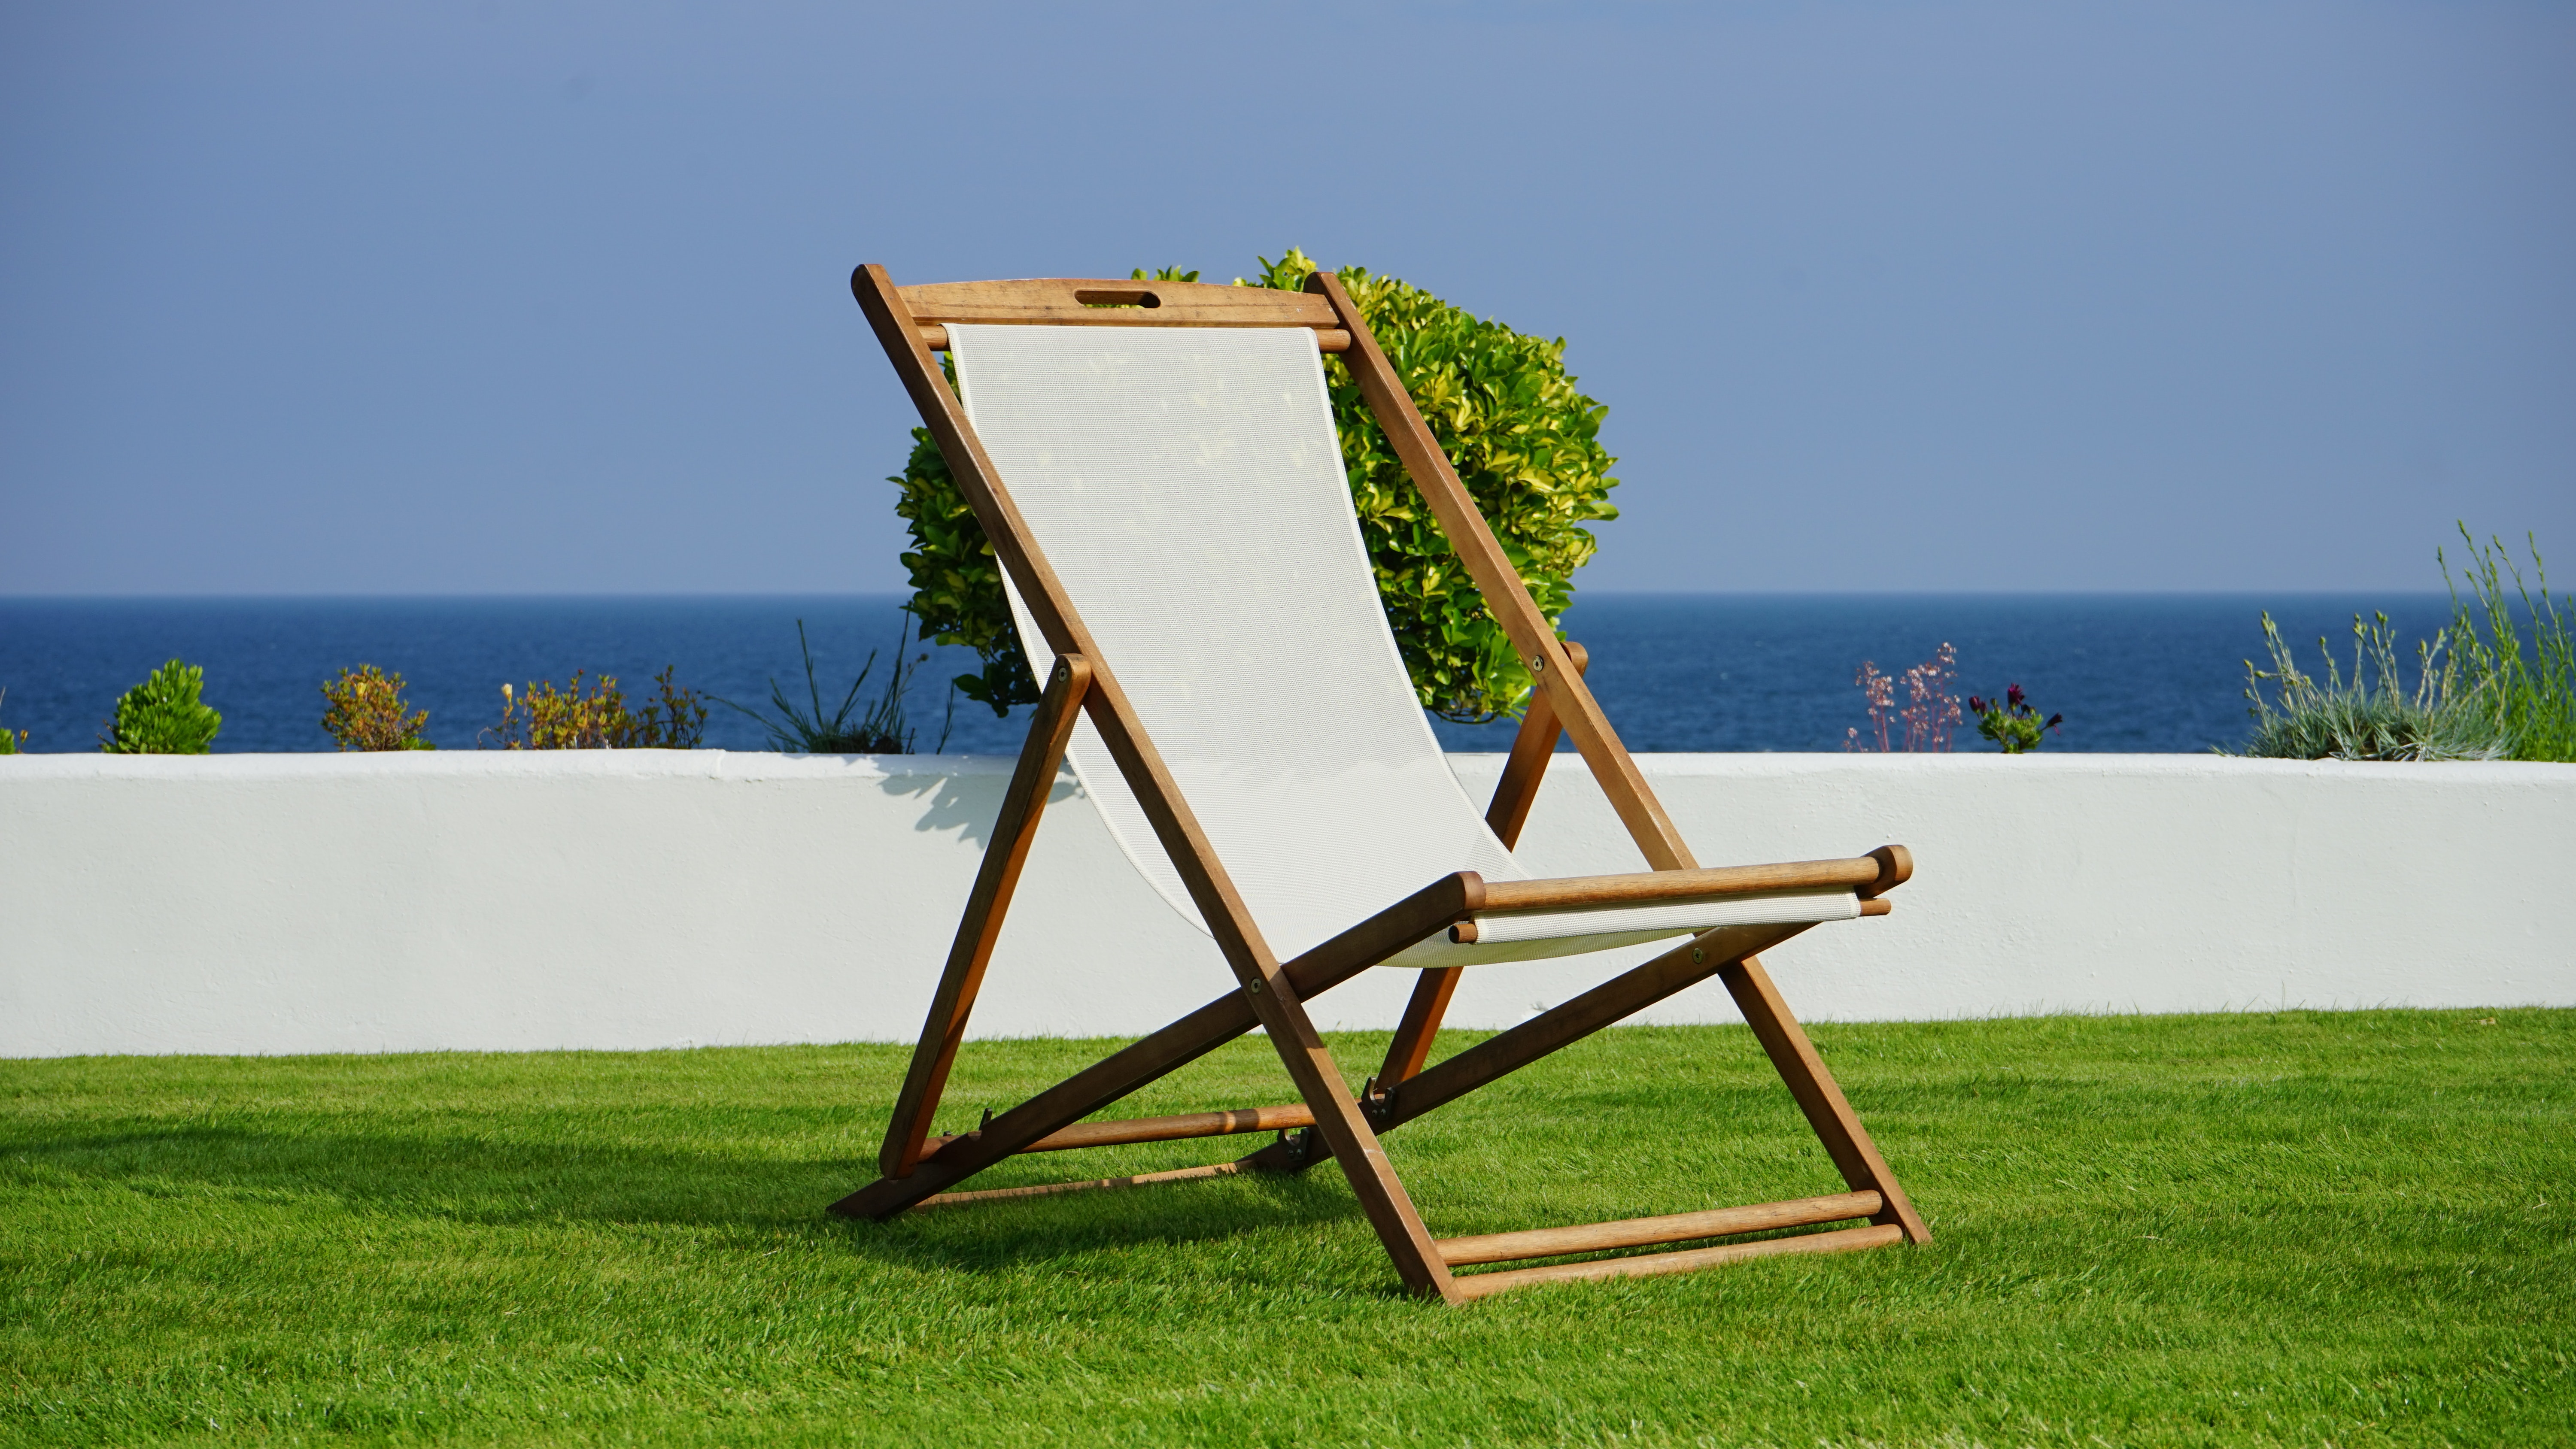 Brown and white wooden lounger photo